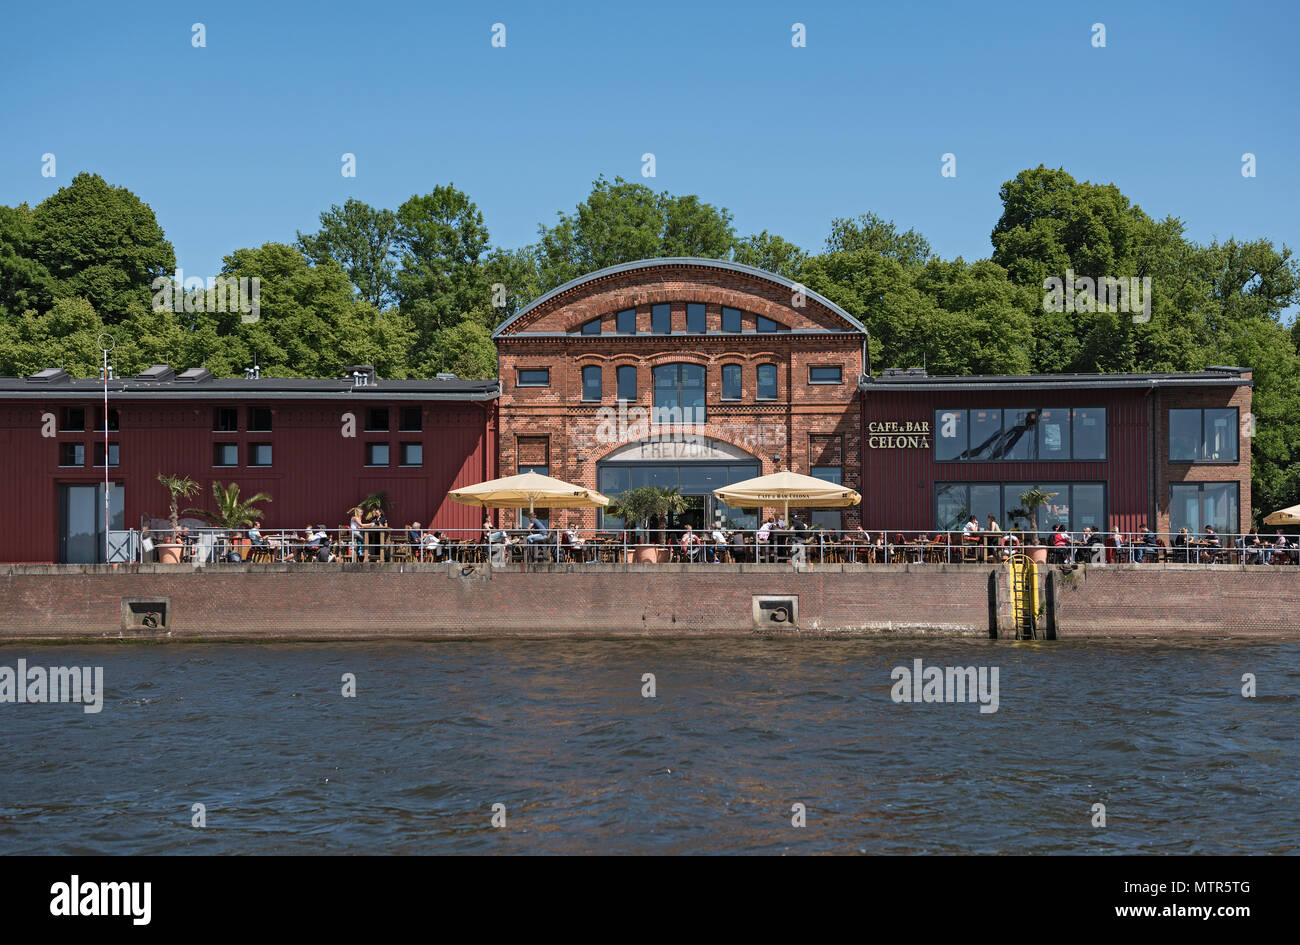 cafe with guests on the bank of the trave river in lubeck, germany - Stock Image